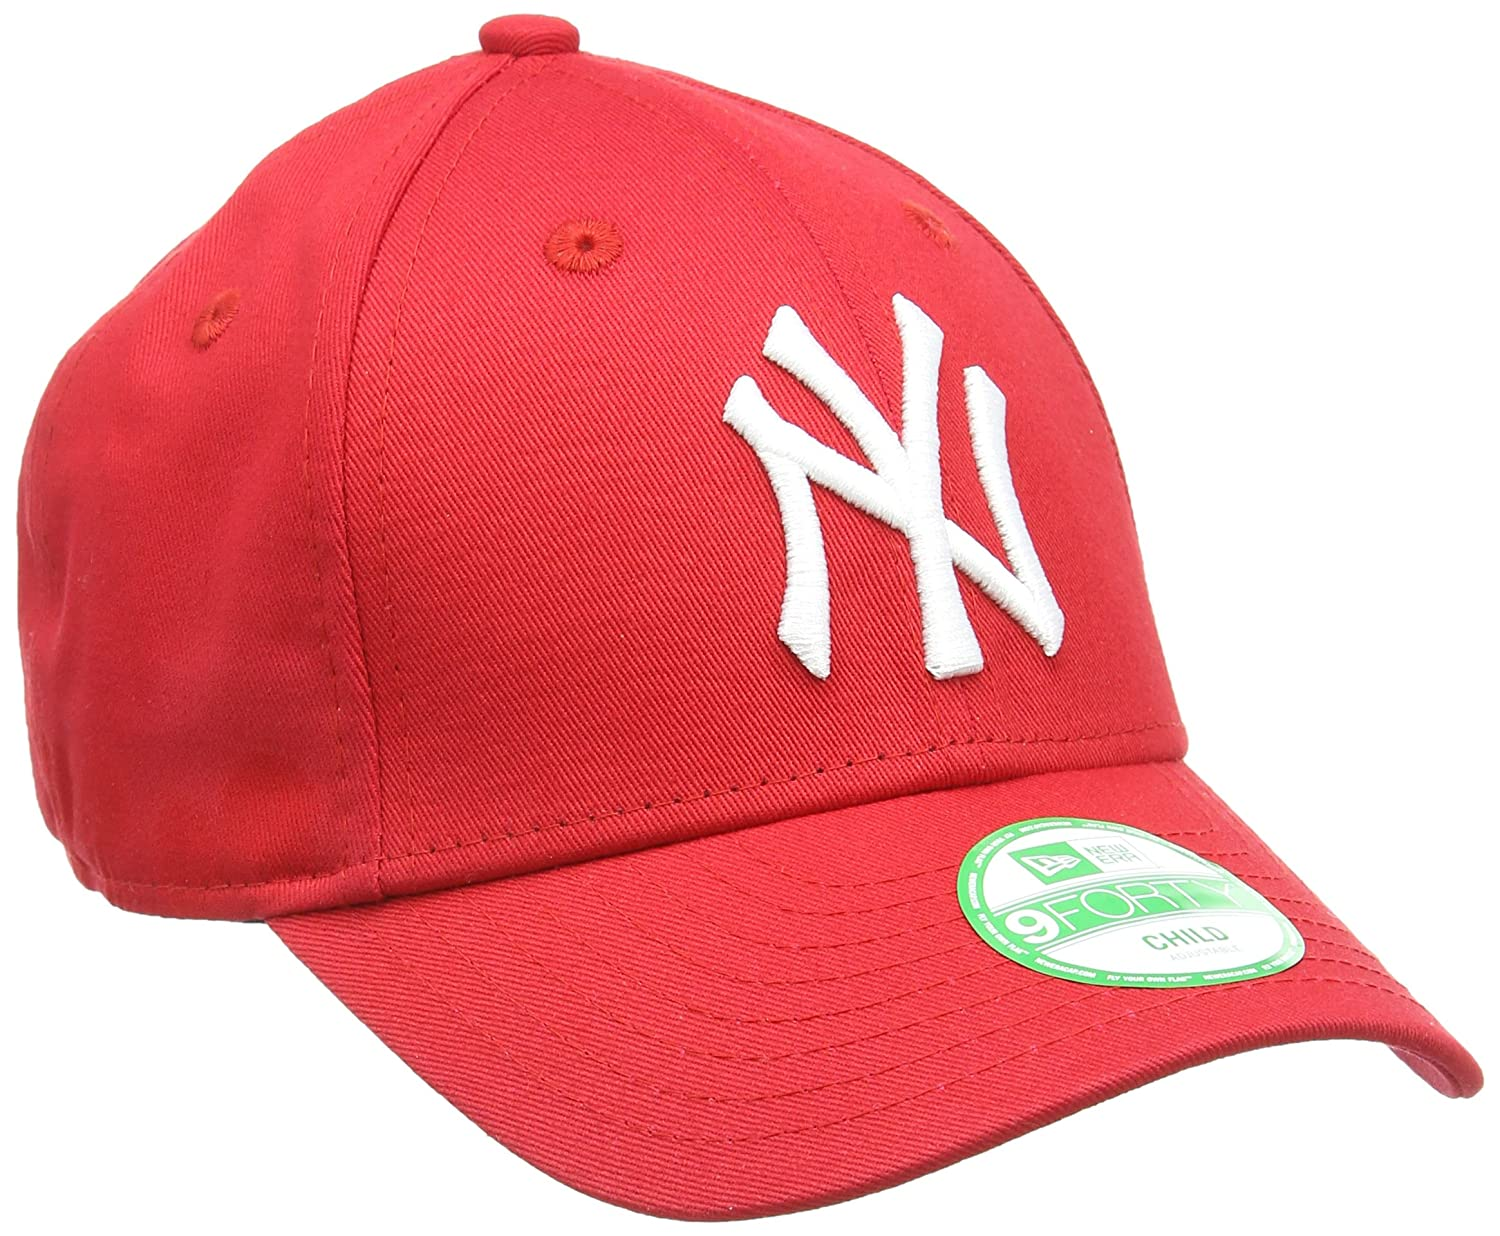 new york yankees cap amazon youth hat discount. Black Bedroom Furniture Sets. Home Design Ideas